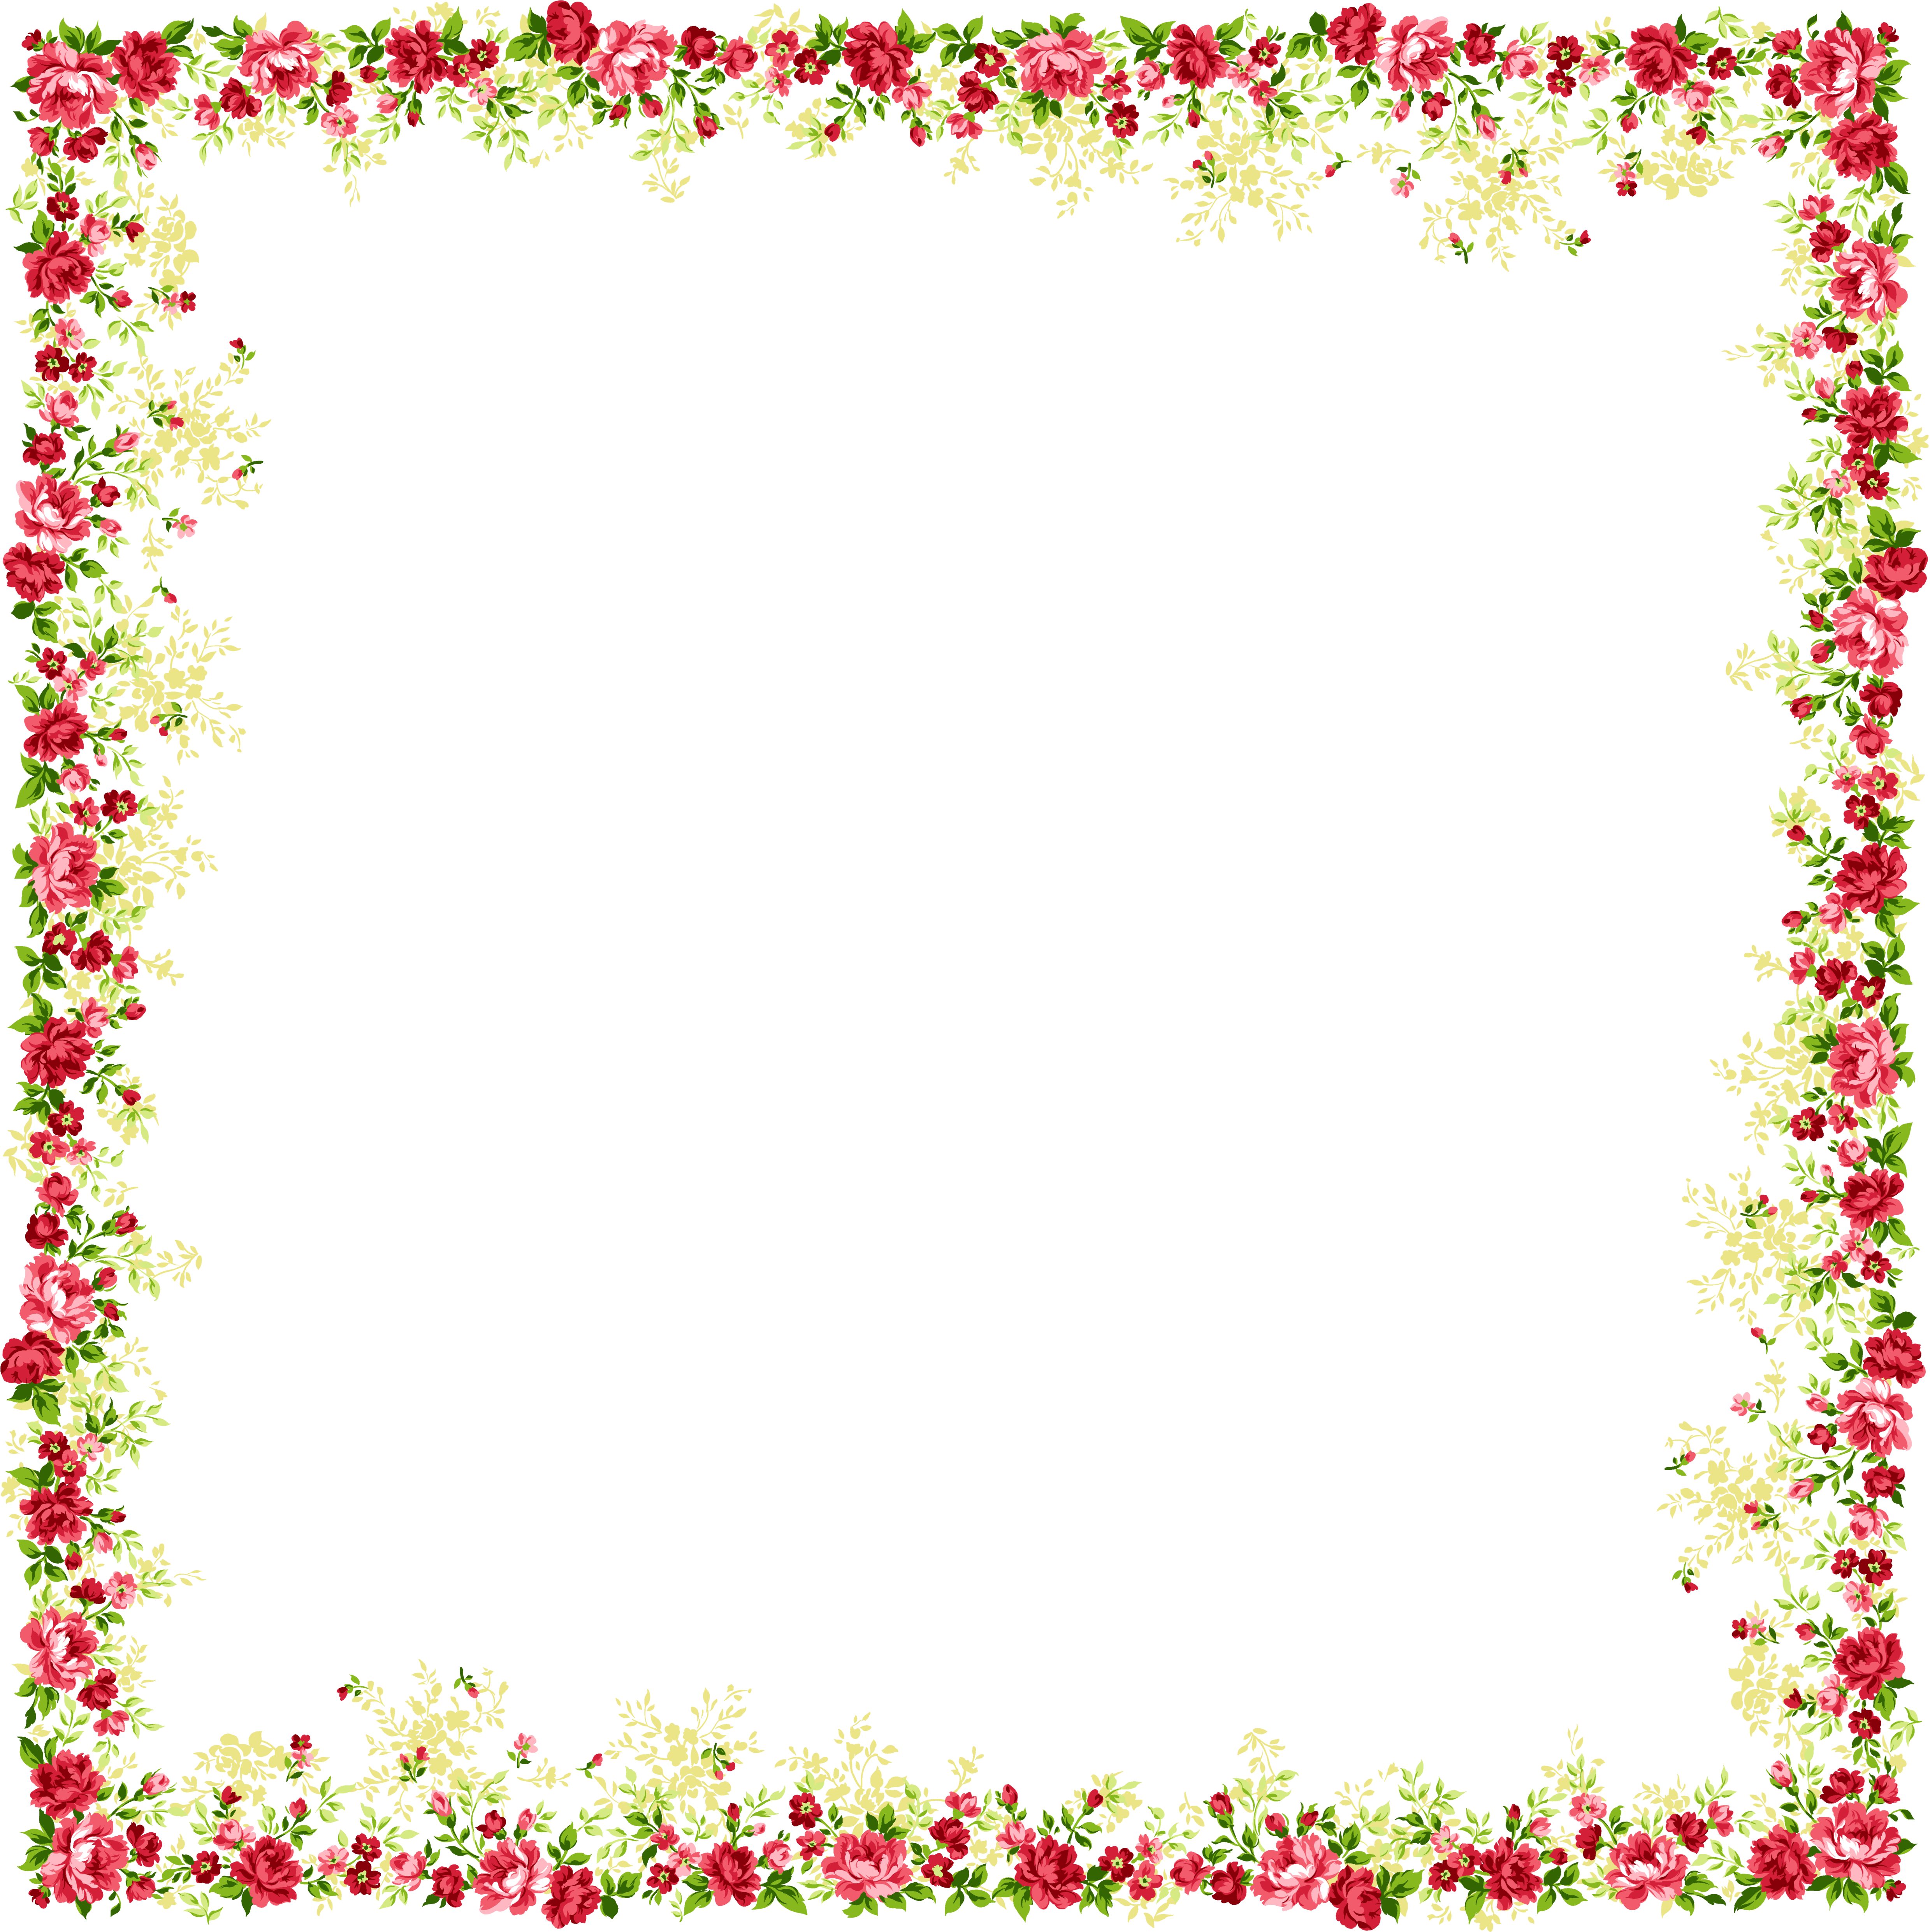 And Picture Flower Frame Frames Borders PNG Image